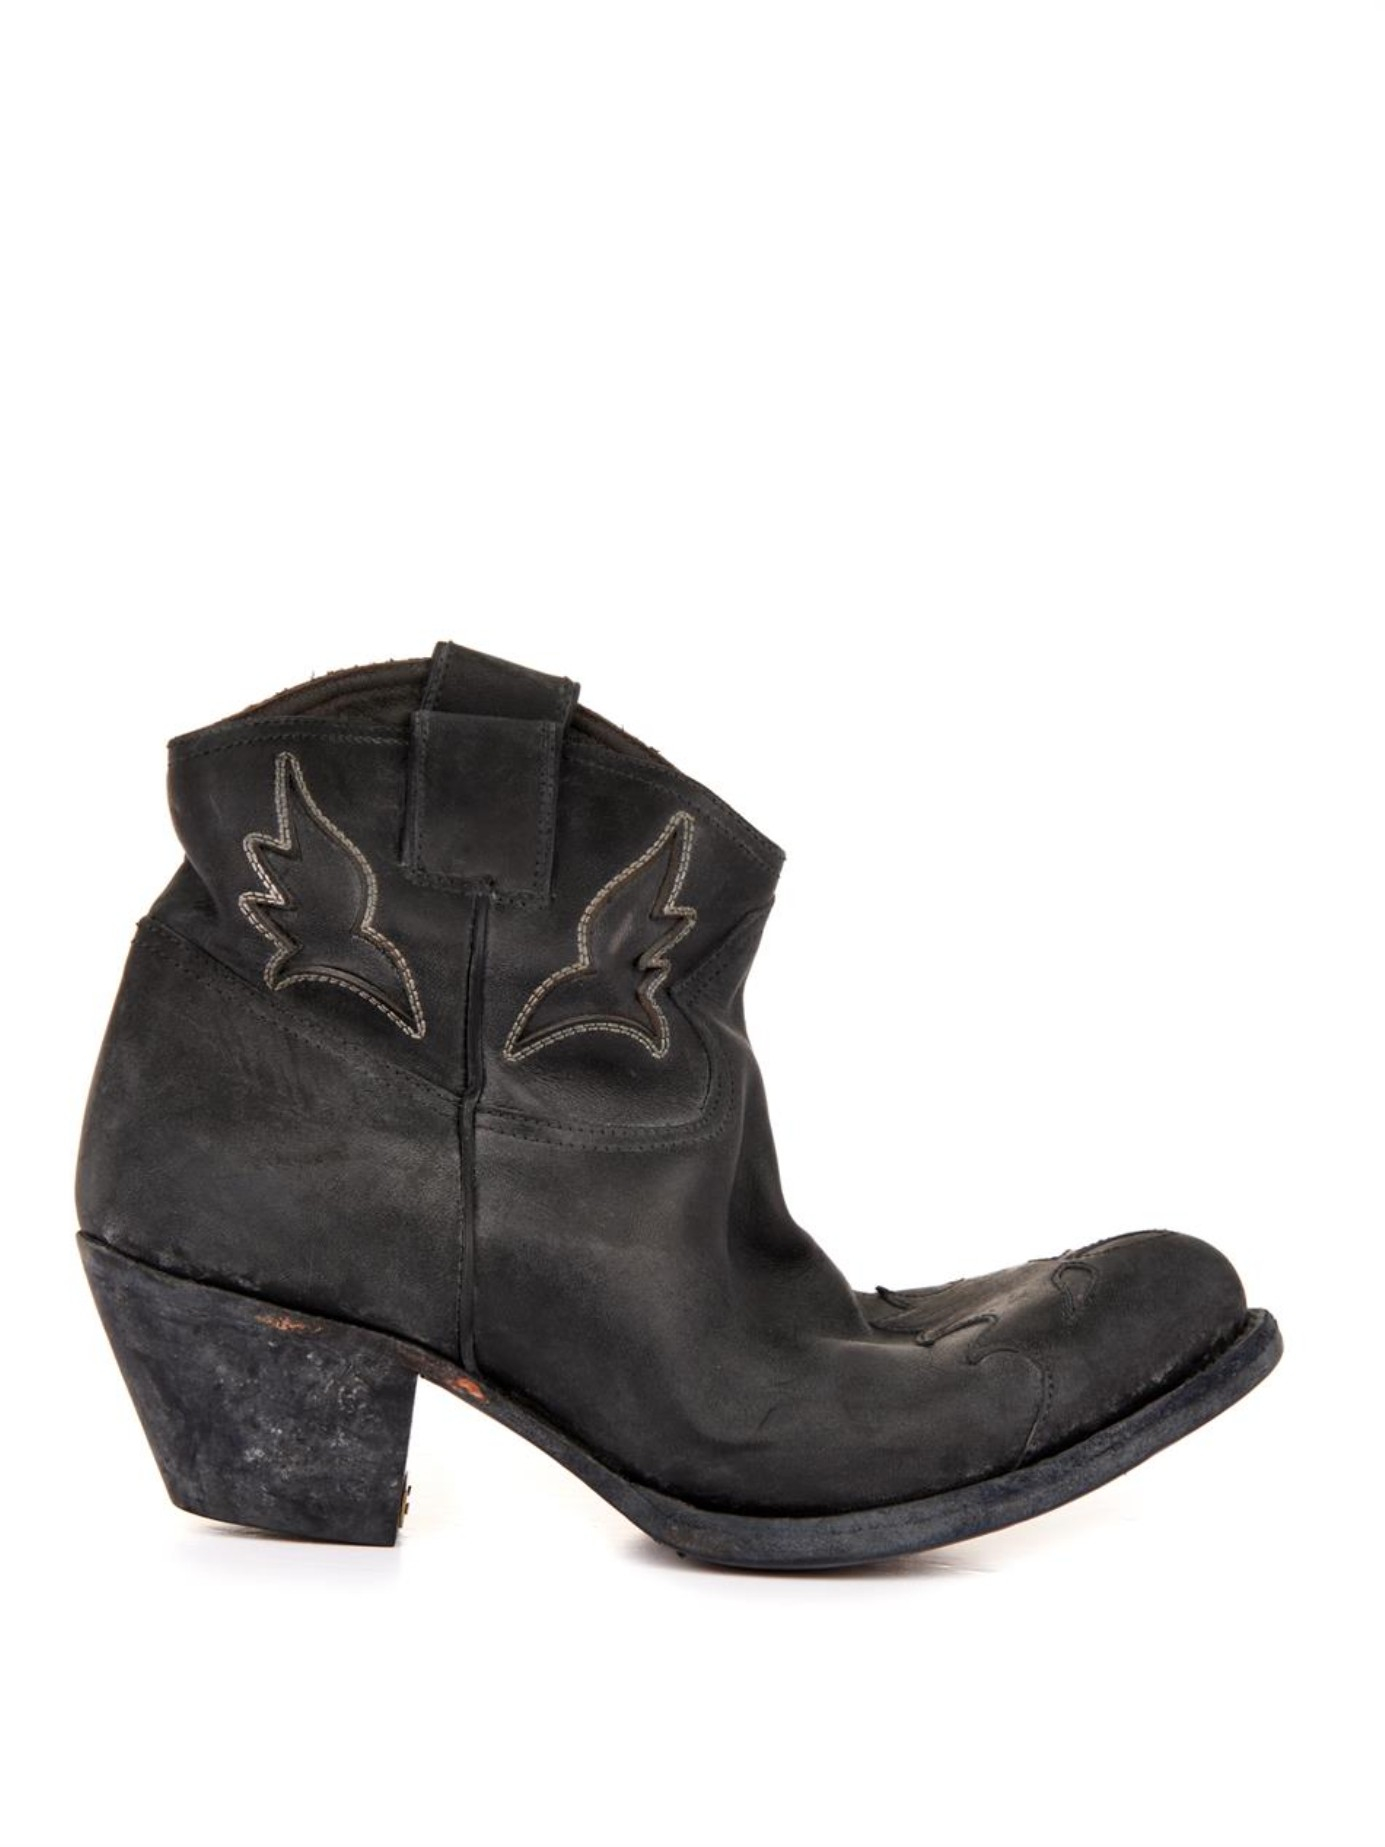 61afeaa482b Golden Goose Deluxe Brand Sydney Distressed-Leather Ankle Boots in ...